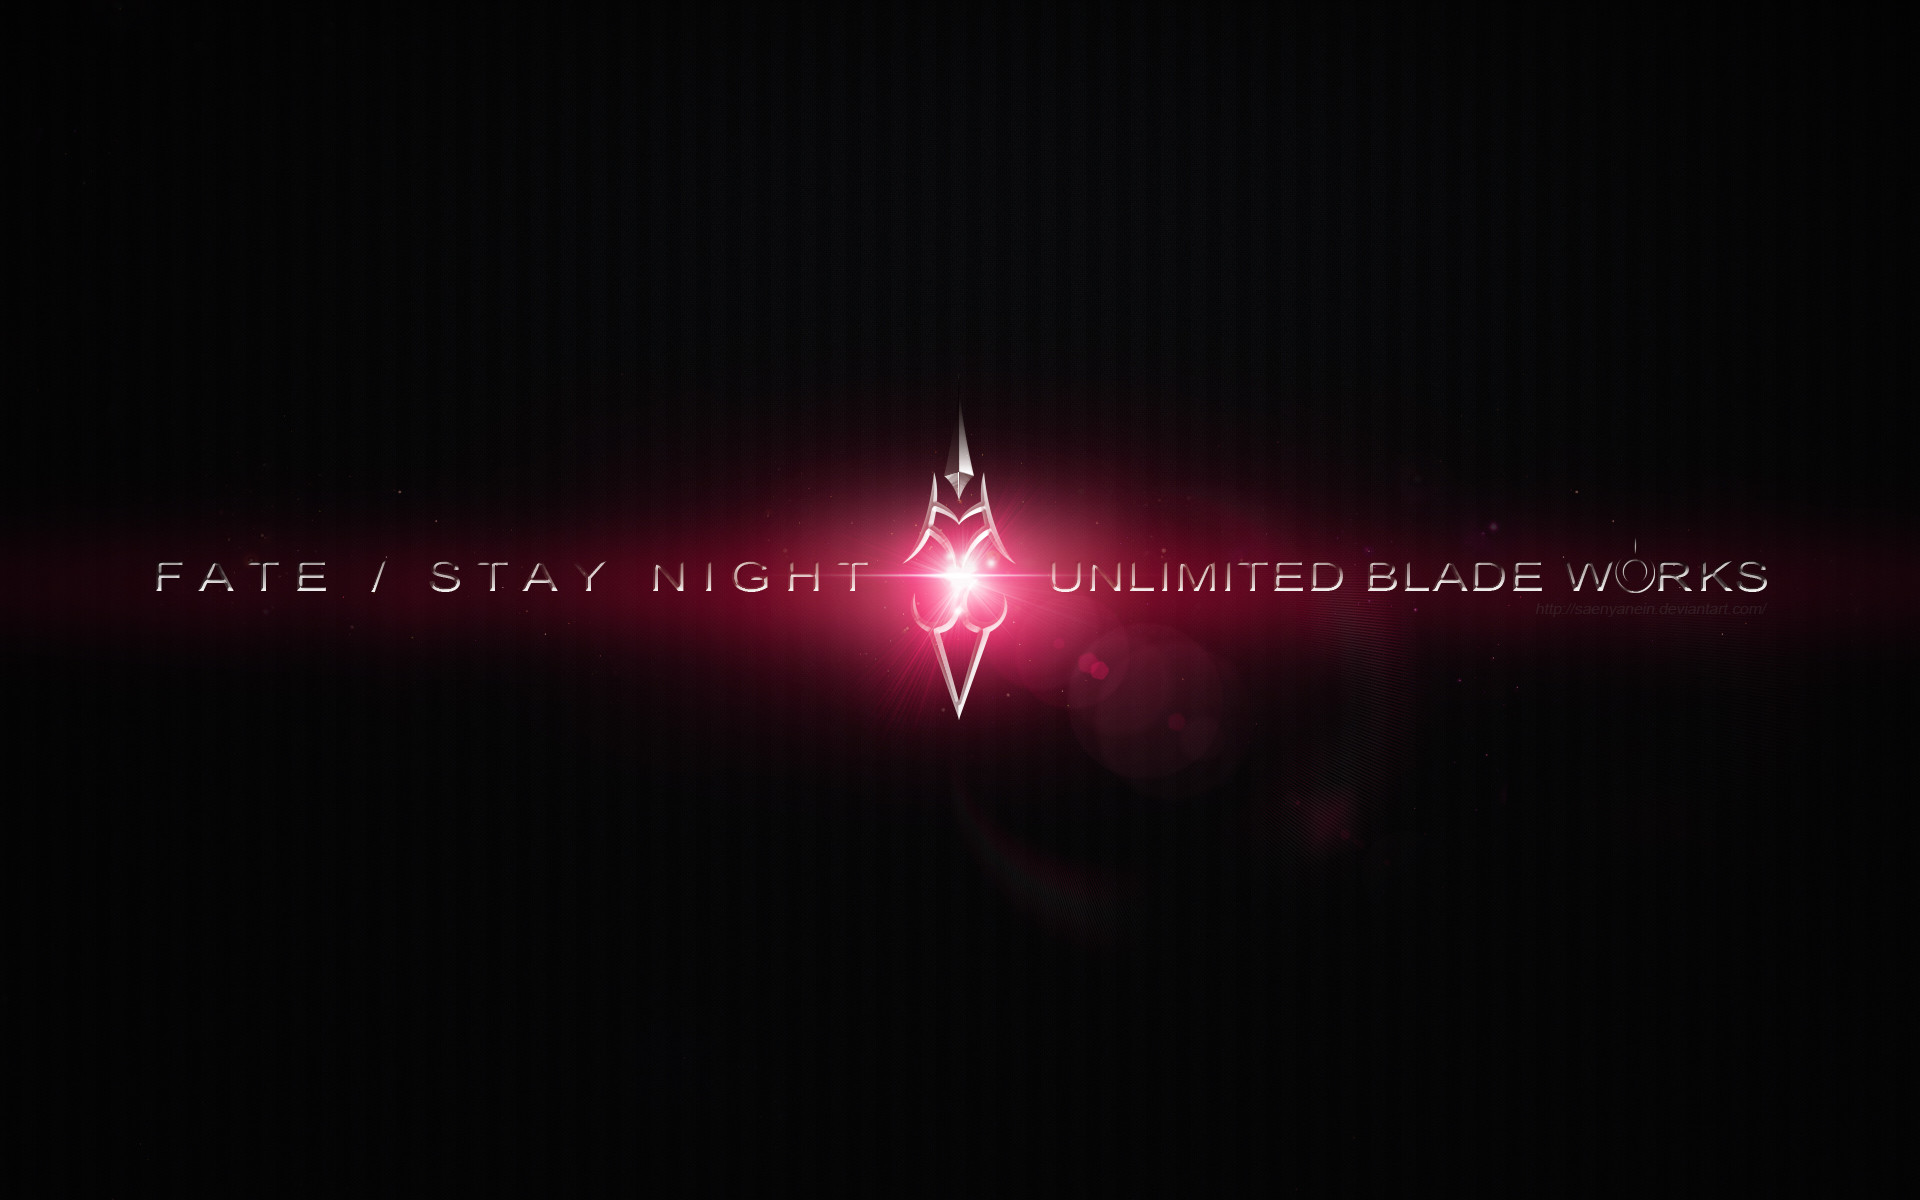 … Fate Stay Night Unlimited Blade Works Wallpaper by SaenyanEin